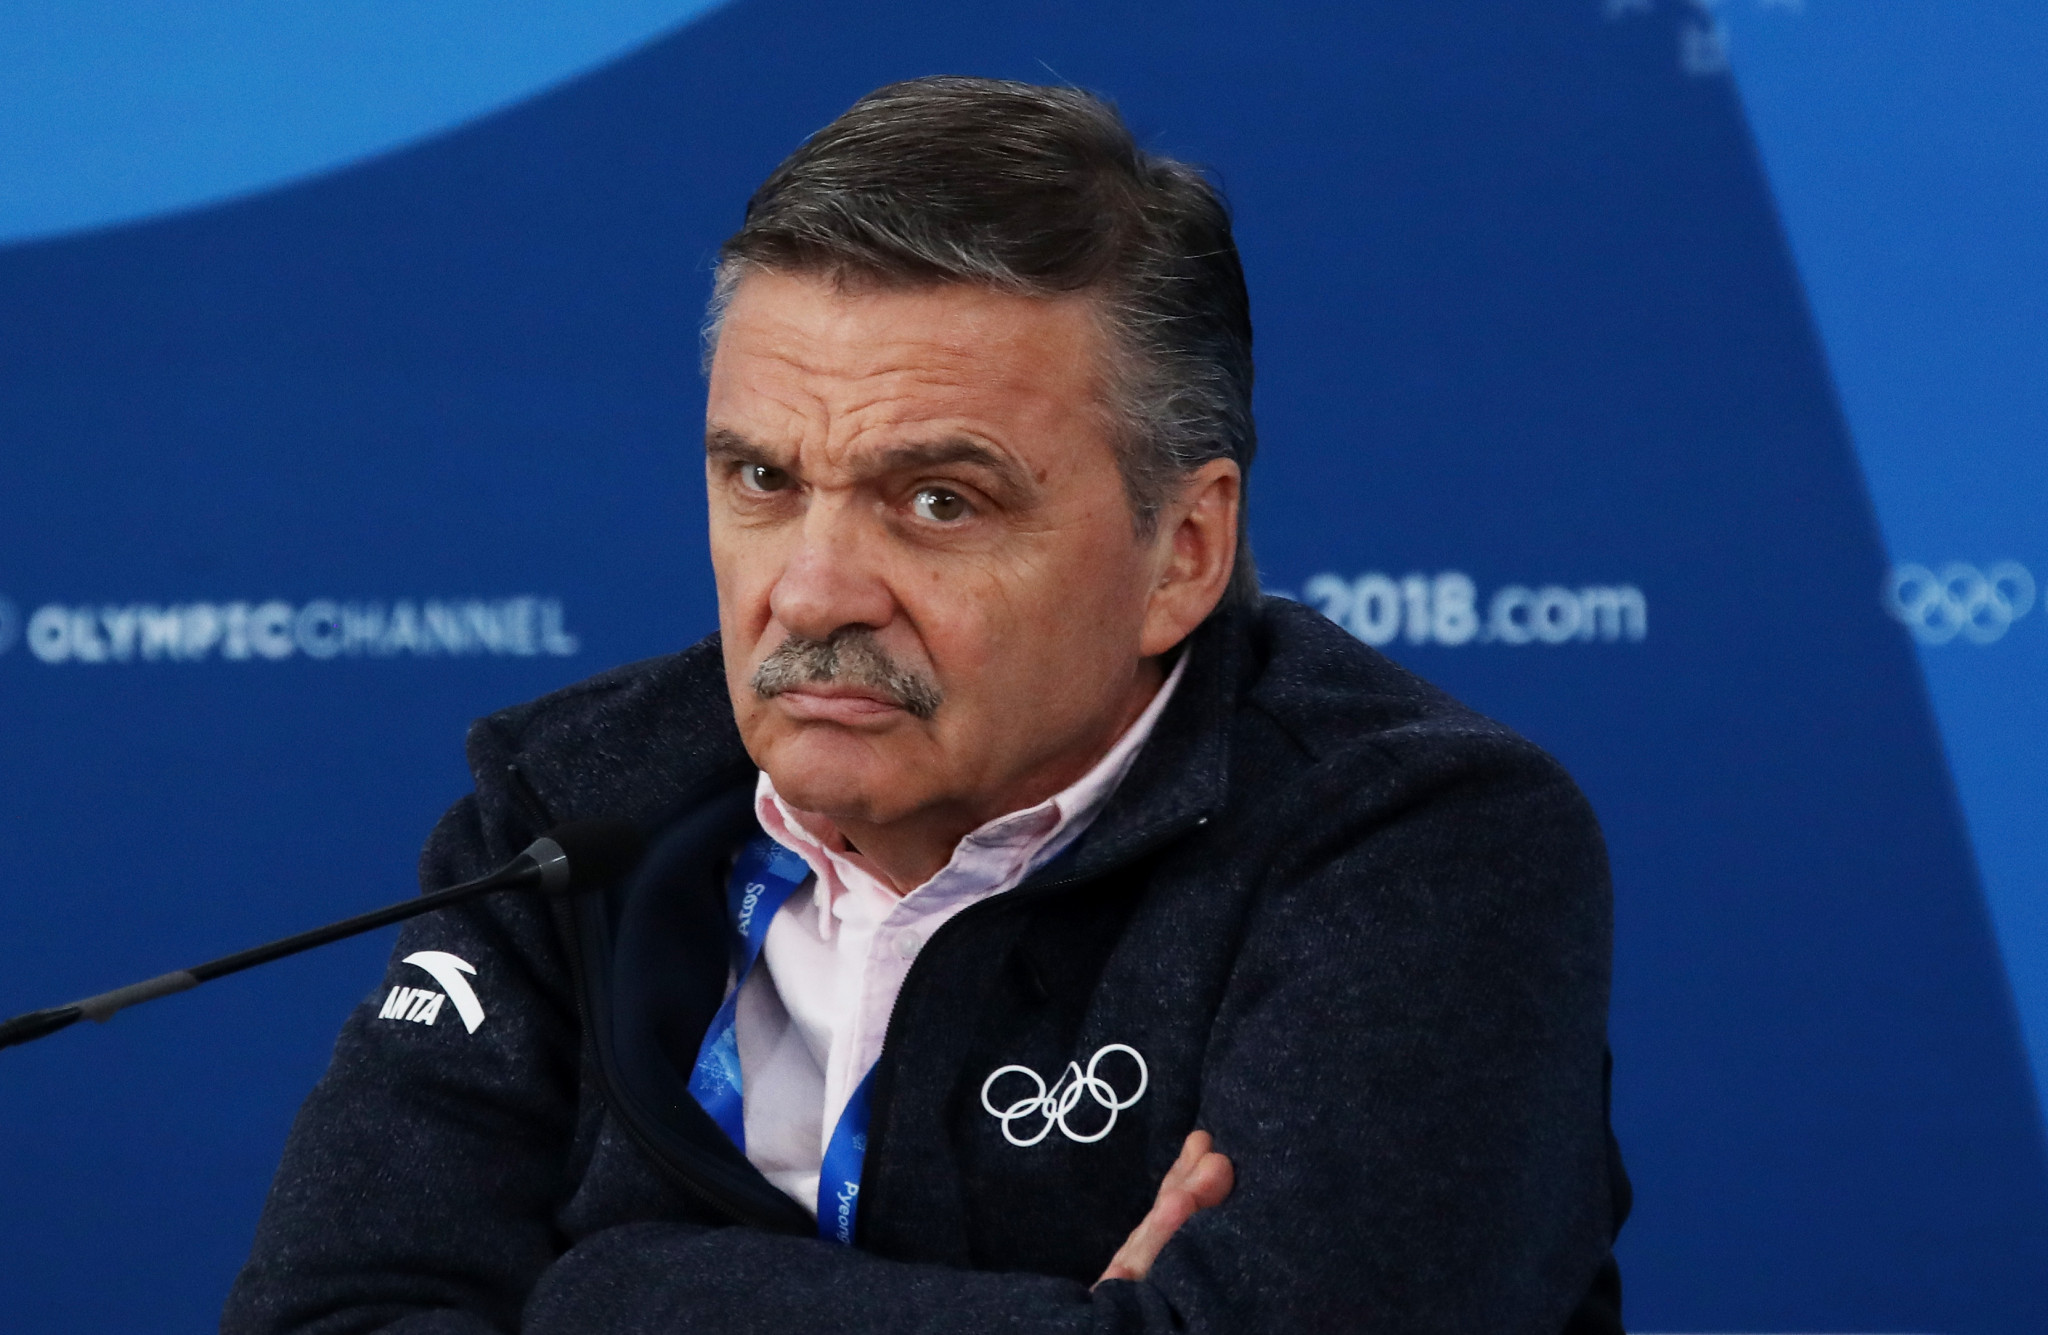 IIHF President Fasel suggests Belarus will get financial compensation after Men's World Championship moved